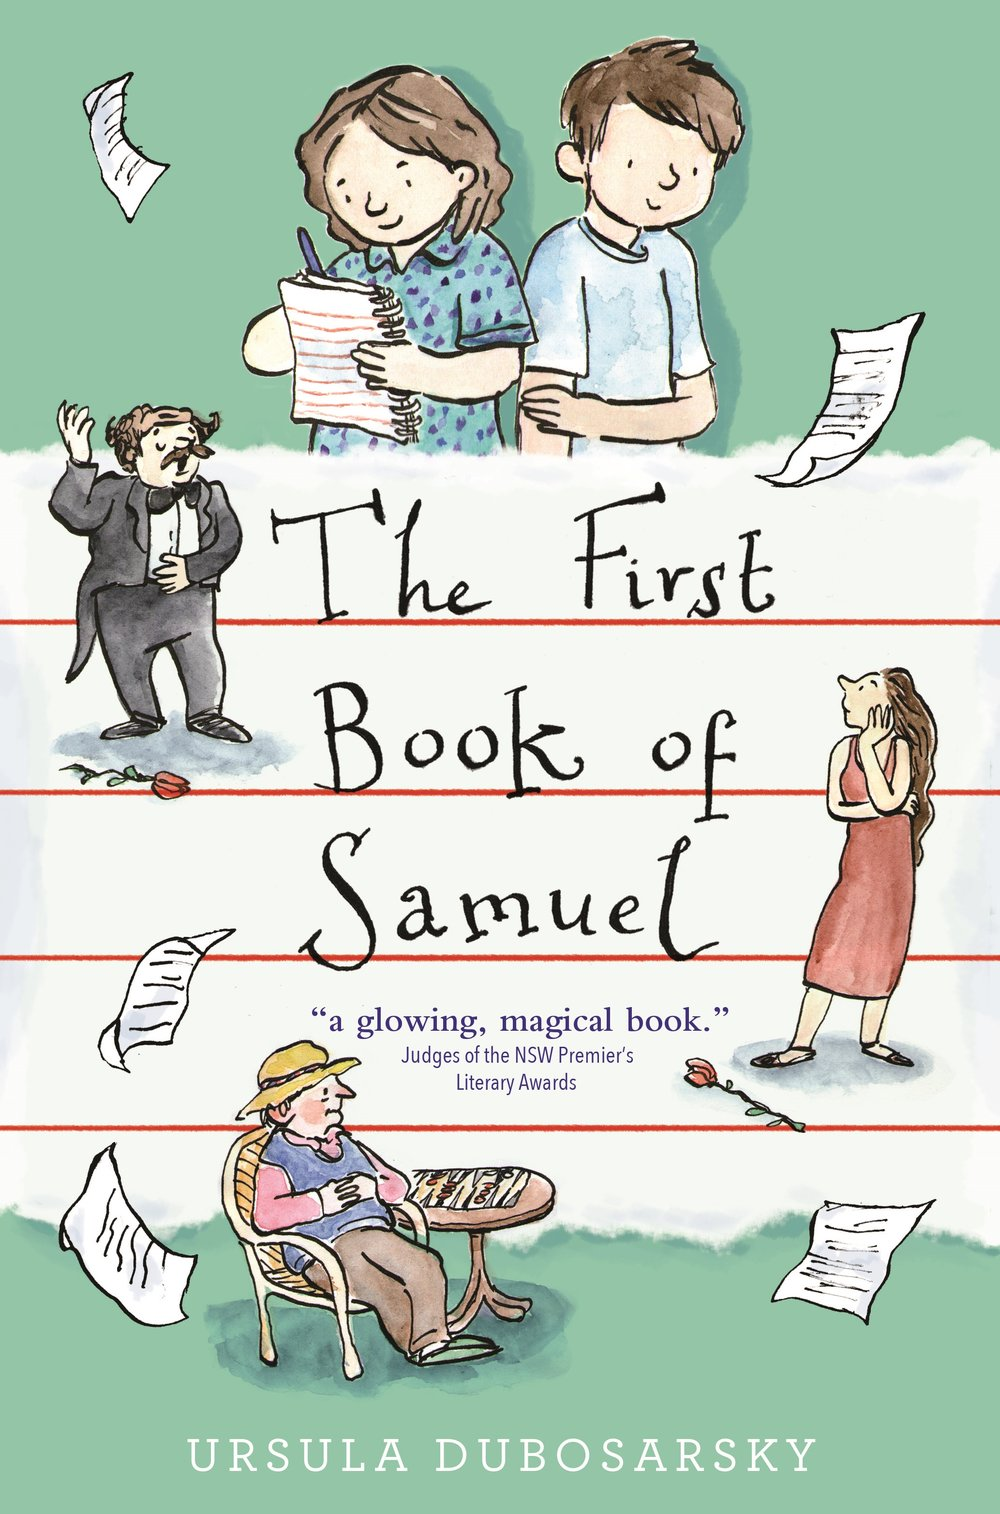 First Book of Samuel UD jpeg.jpg